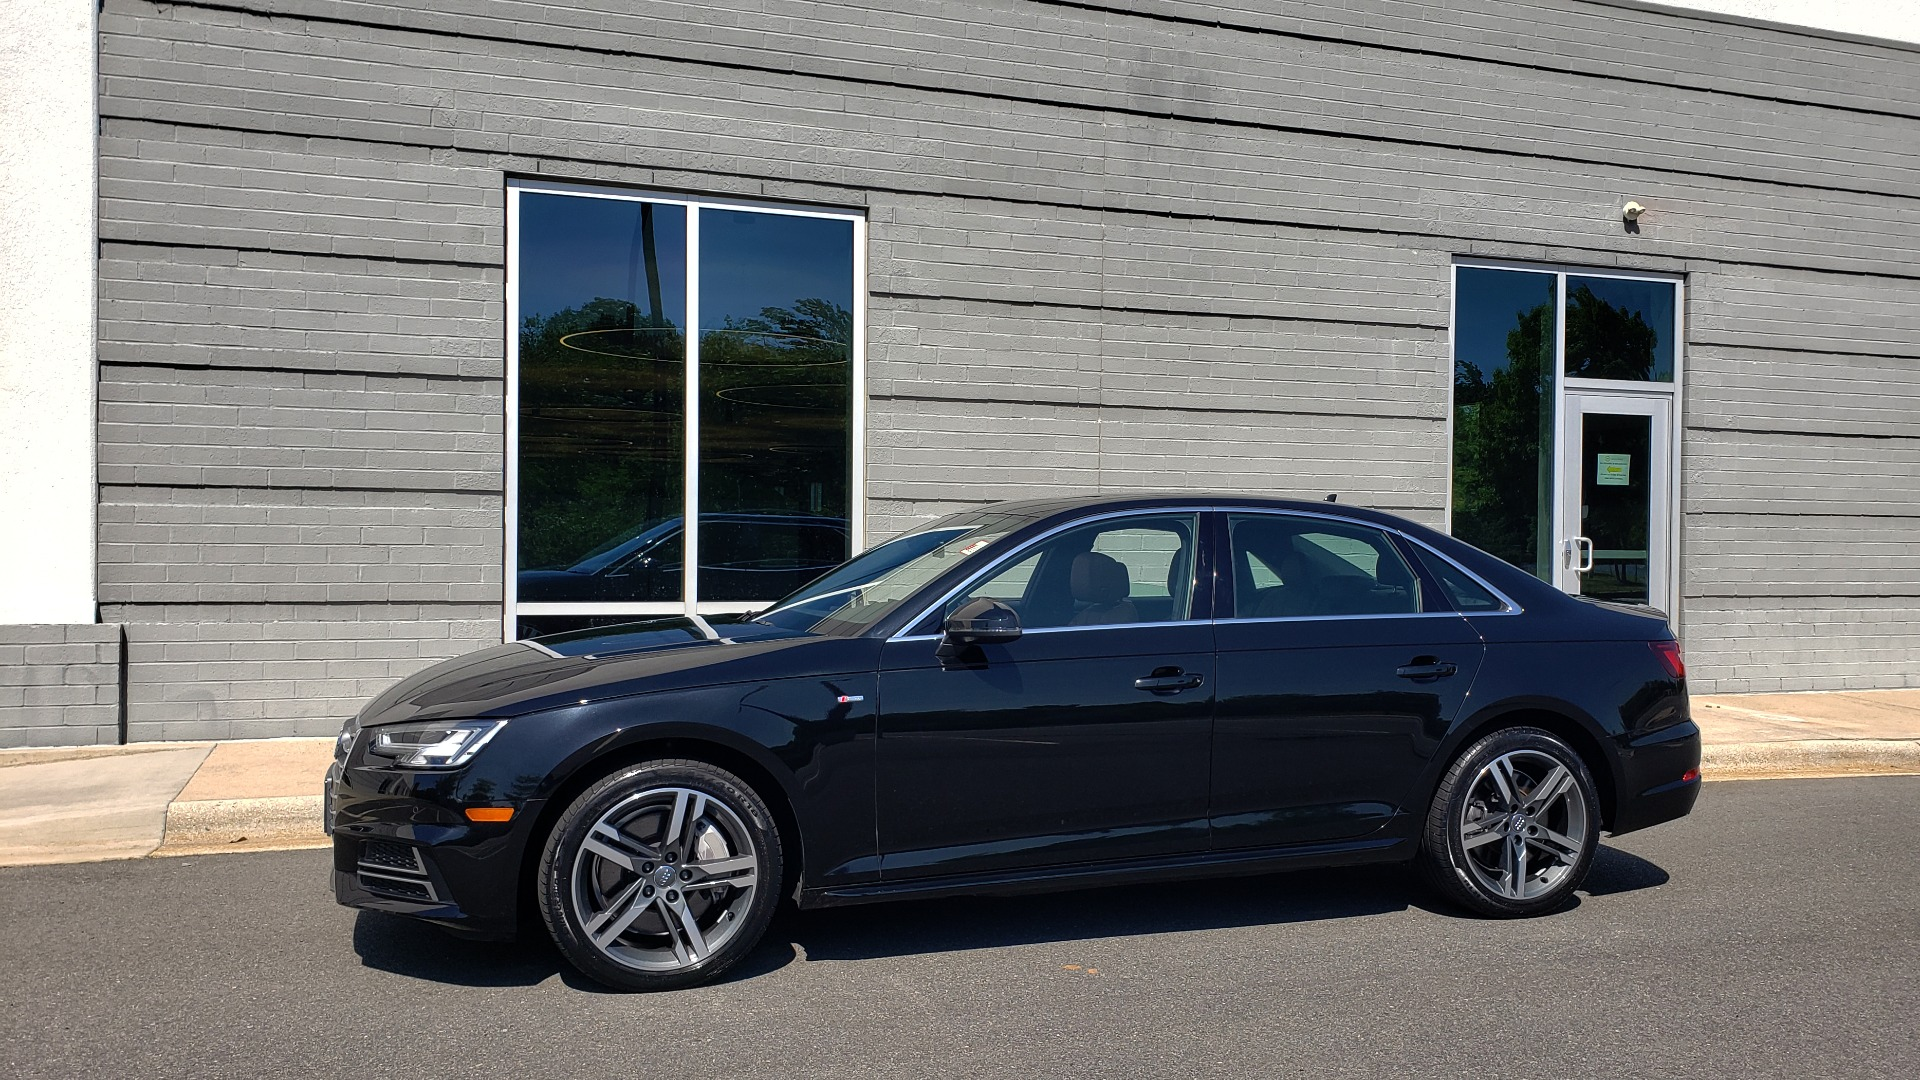 Used 2018 Audi A4 PREMIUM PLUS 2.0T / NAV / SUNROOF / B&O SND / CLD WTHR / REARVIEW for sale $30,695 at Formula Imports in Charlotte NC 28227 3